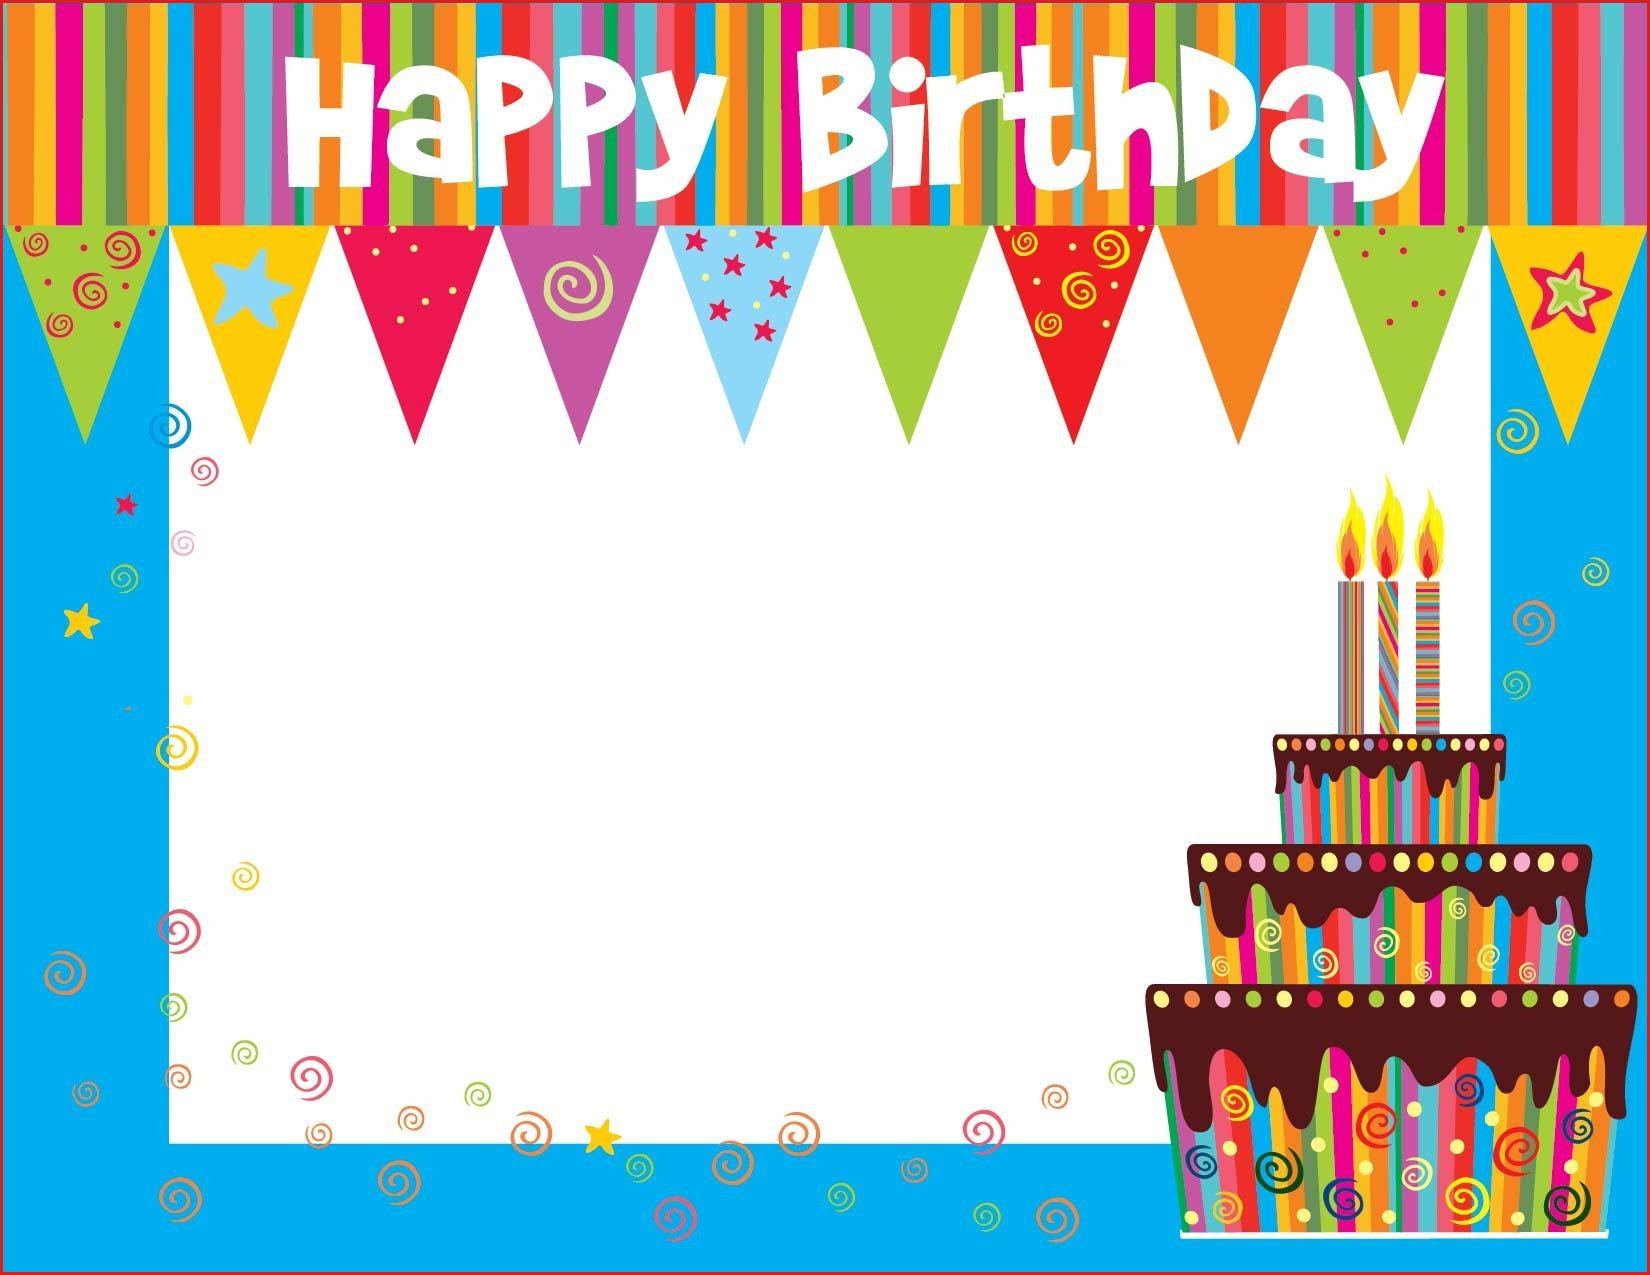 Make A Printable Birthday Card Free Printable Birthday Cards For - Free Printable Birthday Cards For Kids